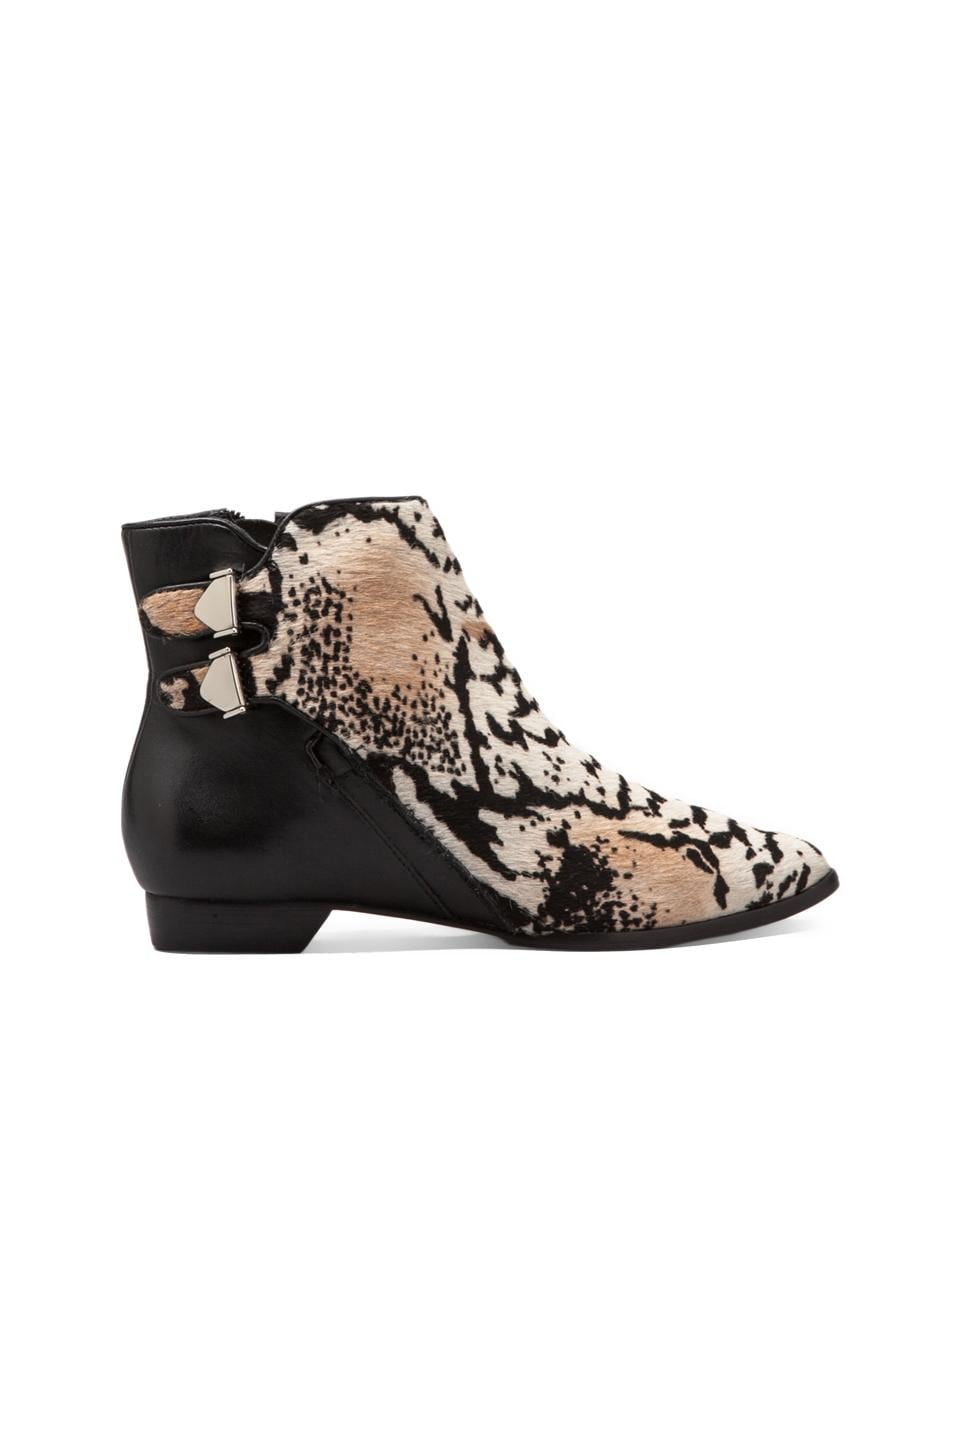 DEREK LAM 10 CROSBY Annabell Haircalf Leather Bootie in Grey Snake Print/Black